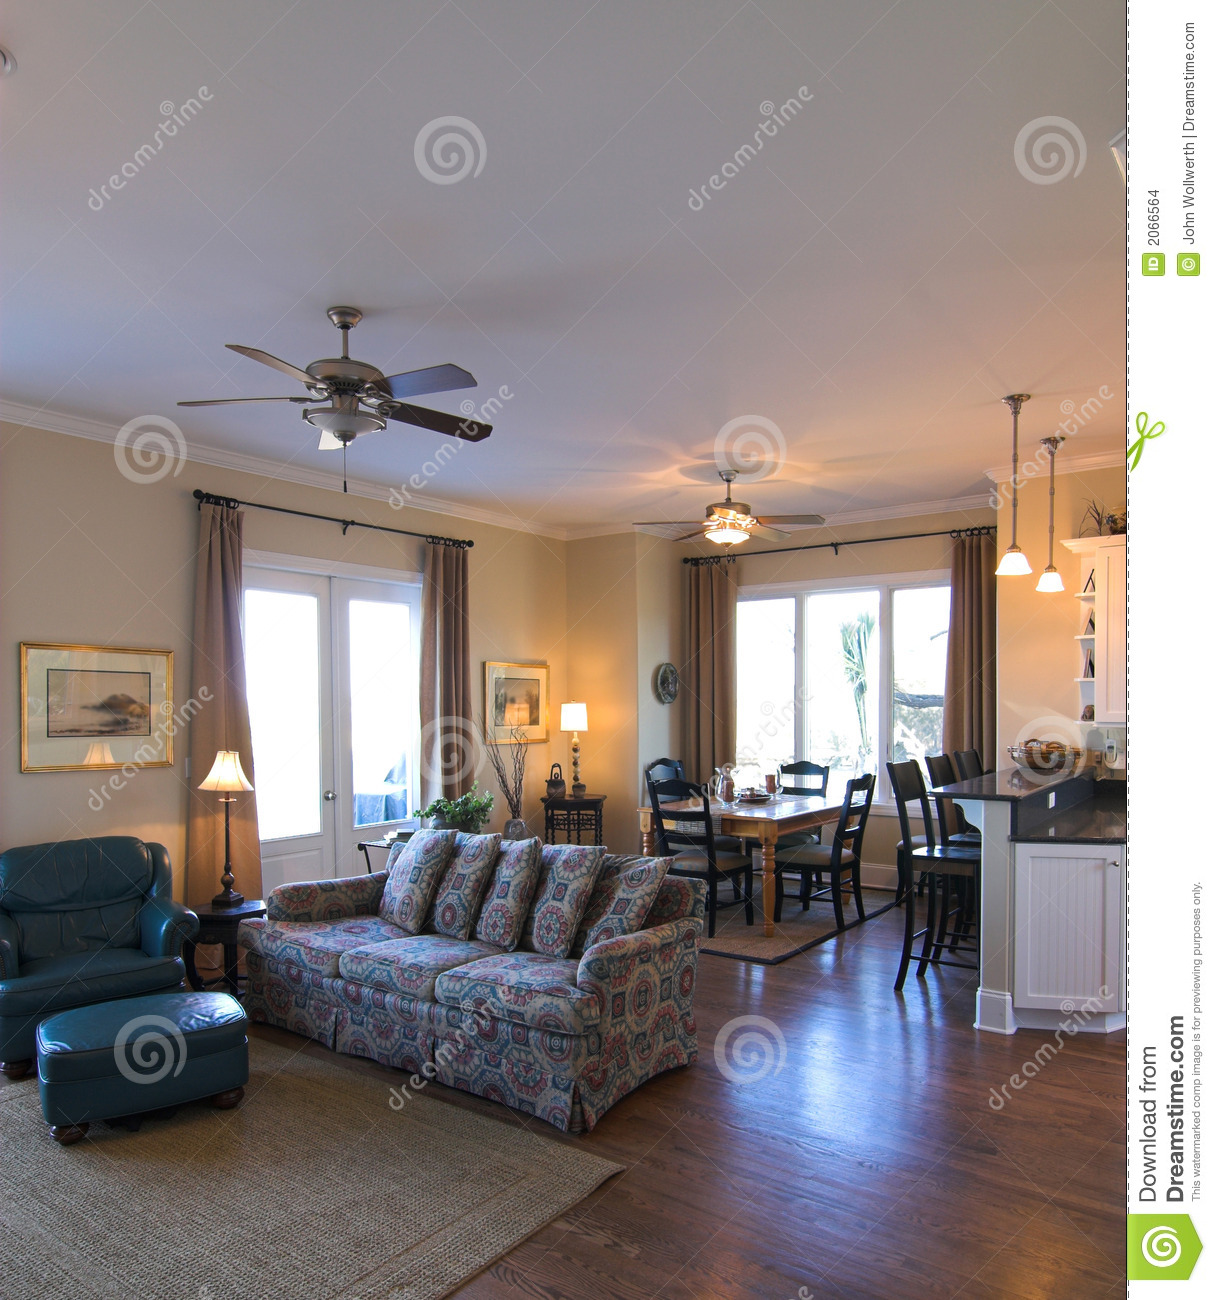 Living And Dining Room: Open Living Room And Dining Room Stock Photo